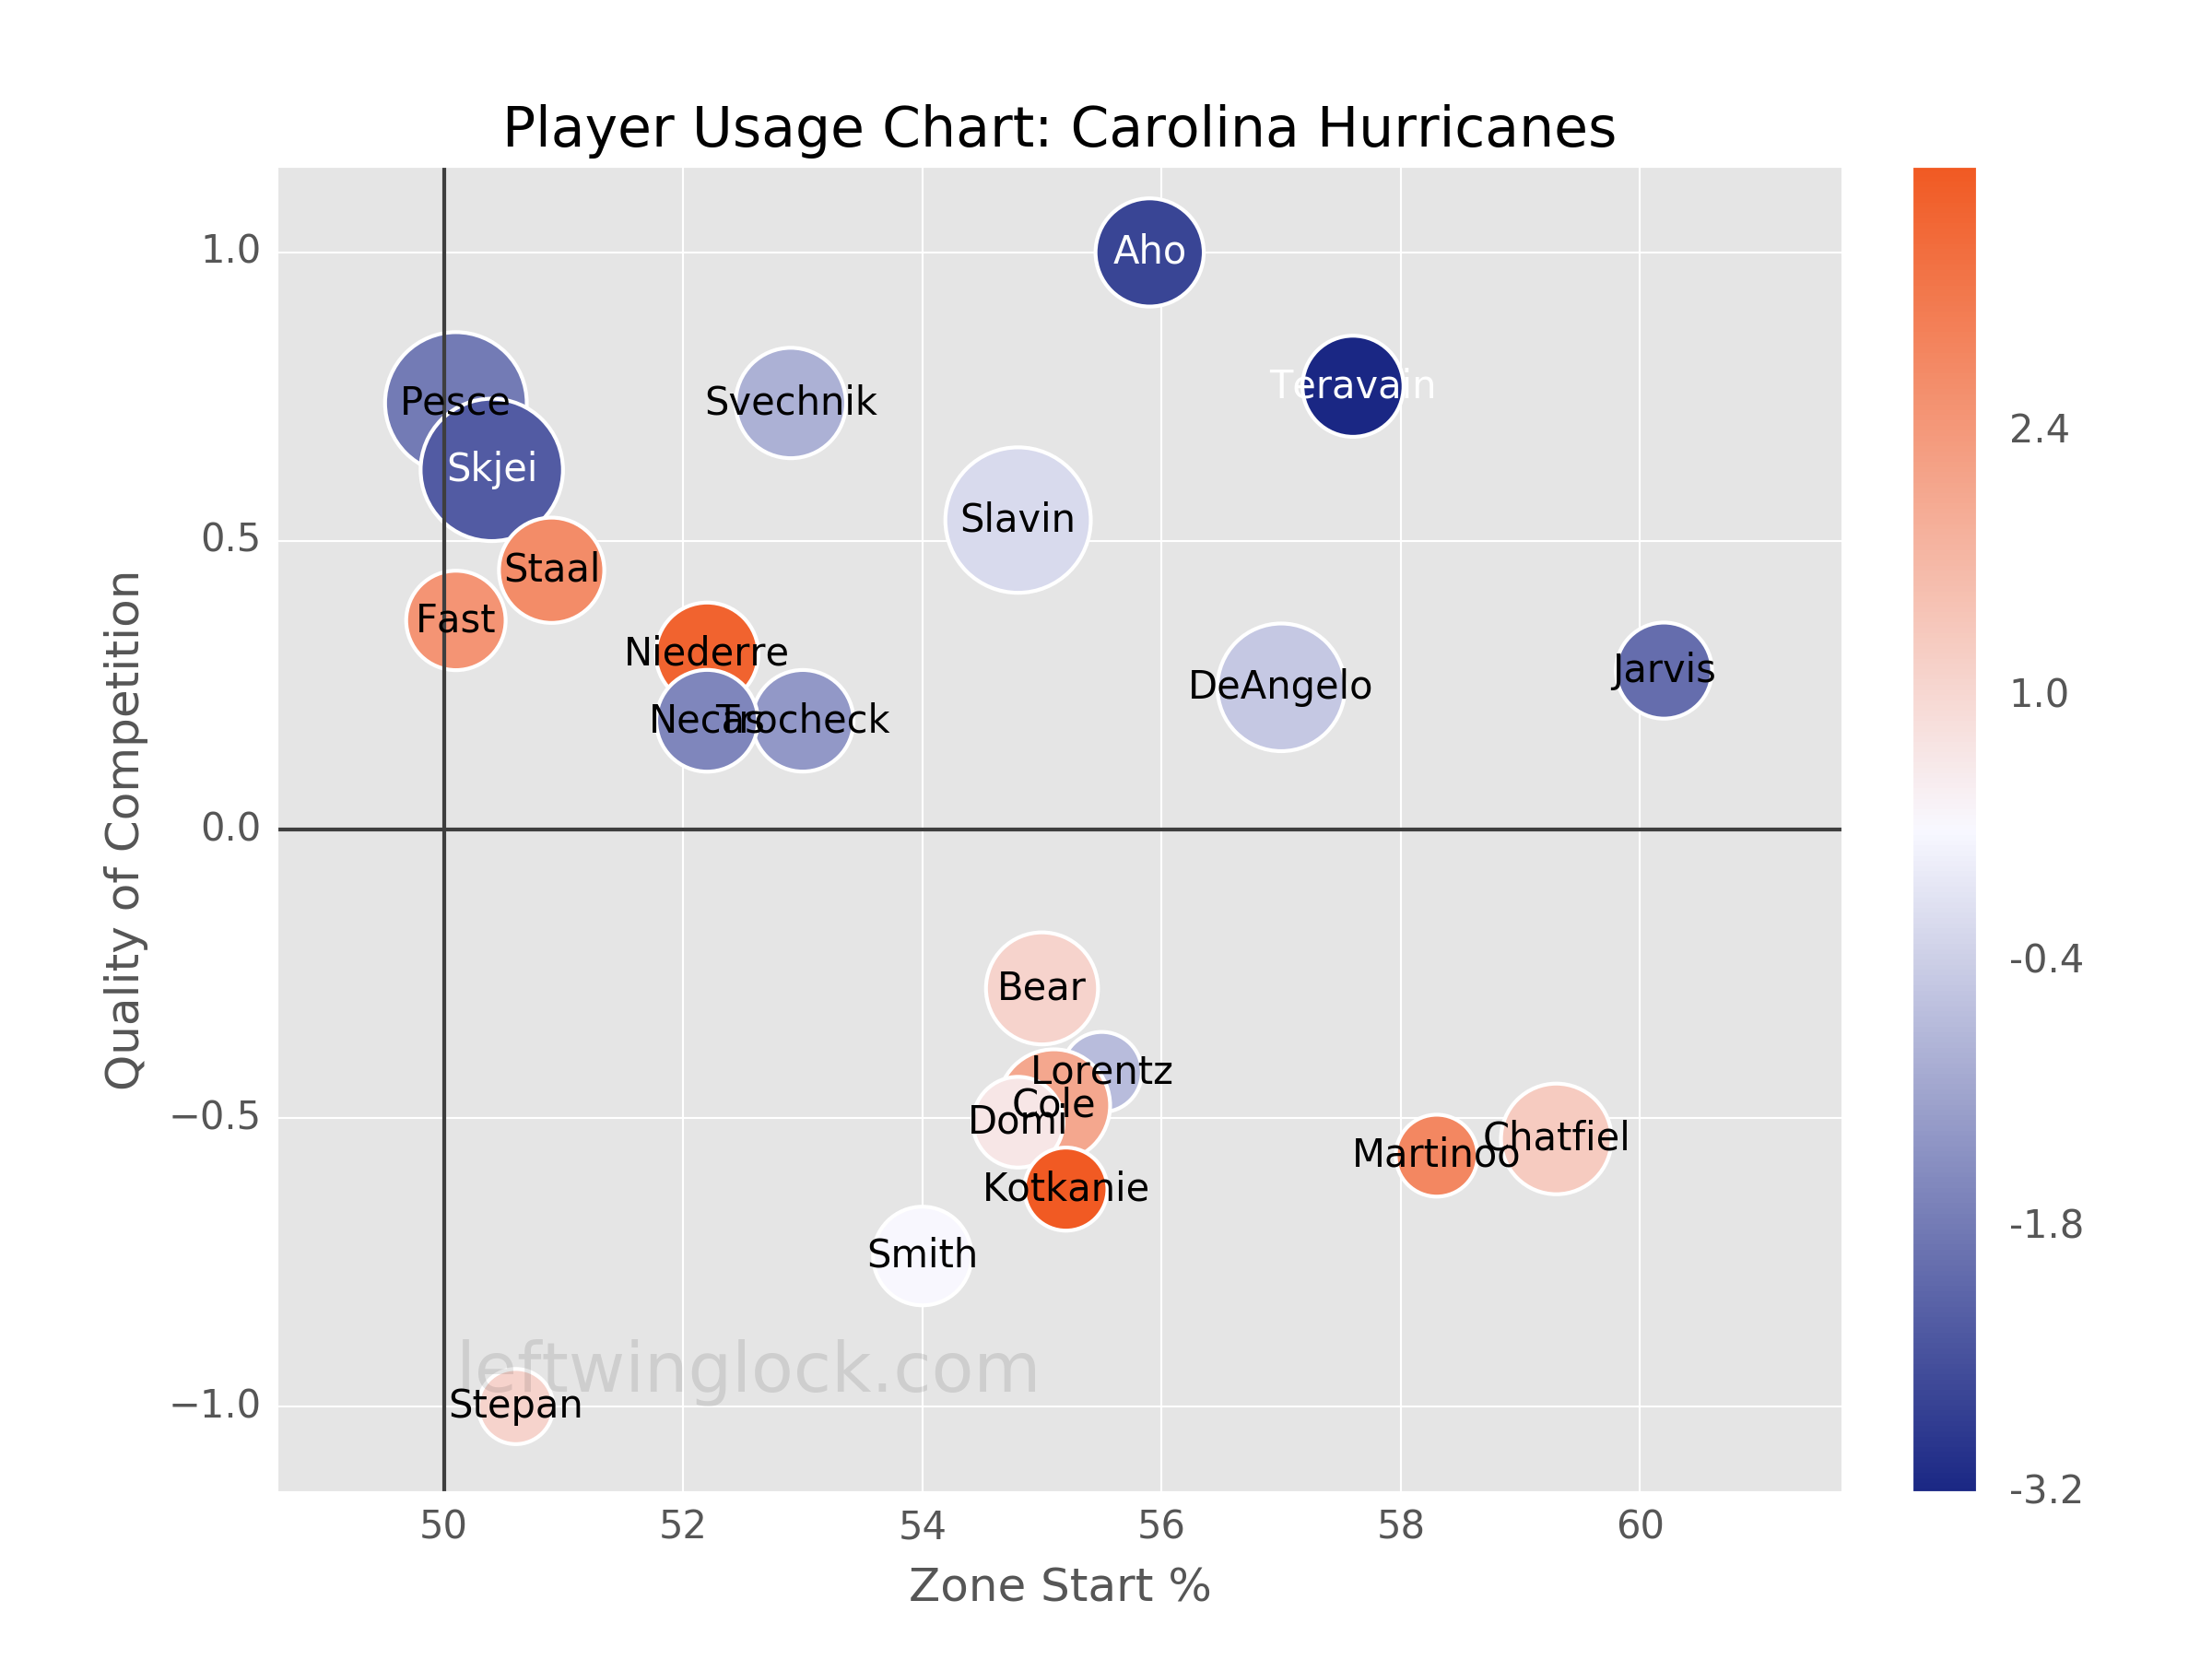 Carolina Hurricanes Player Usage Chart